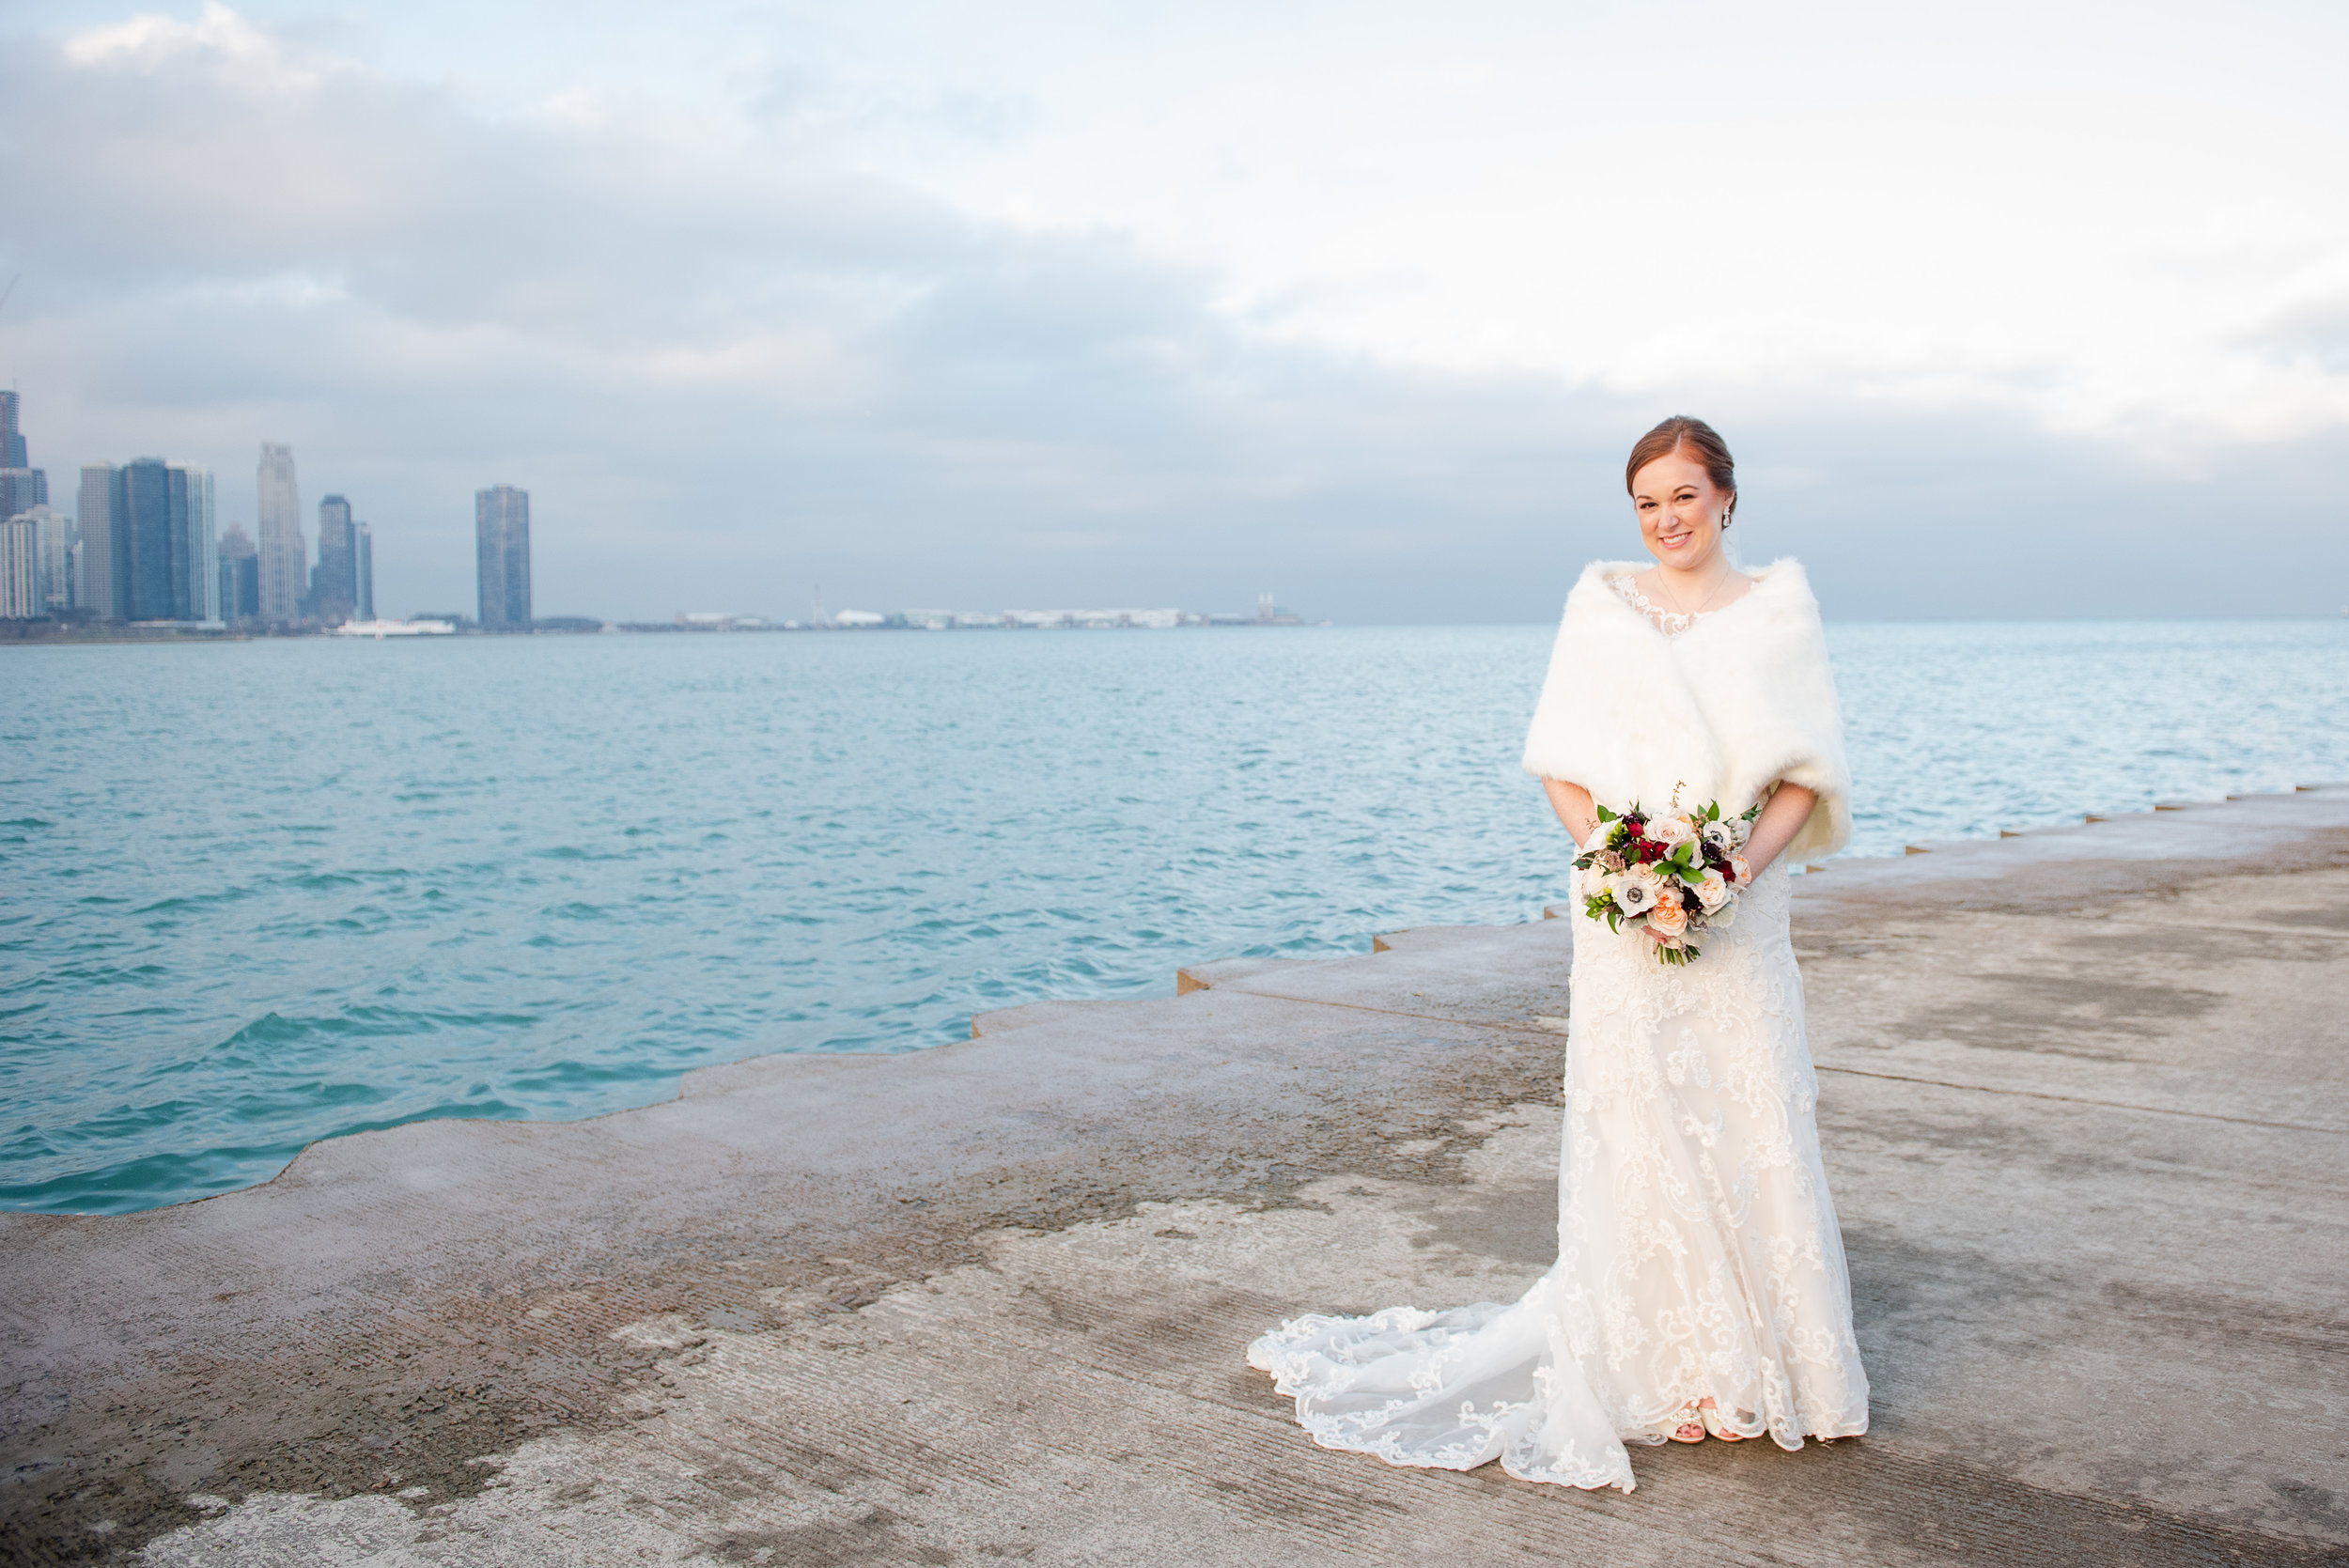 CHI Thee WED - Winter Wedding TipsDecember 13, 2018